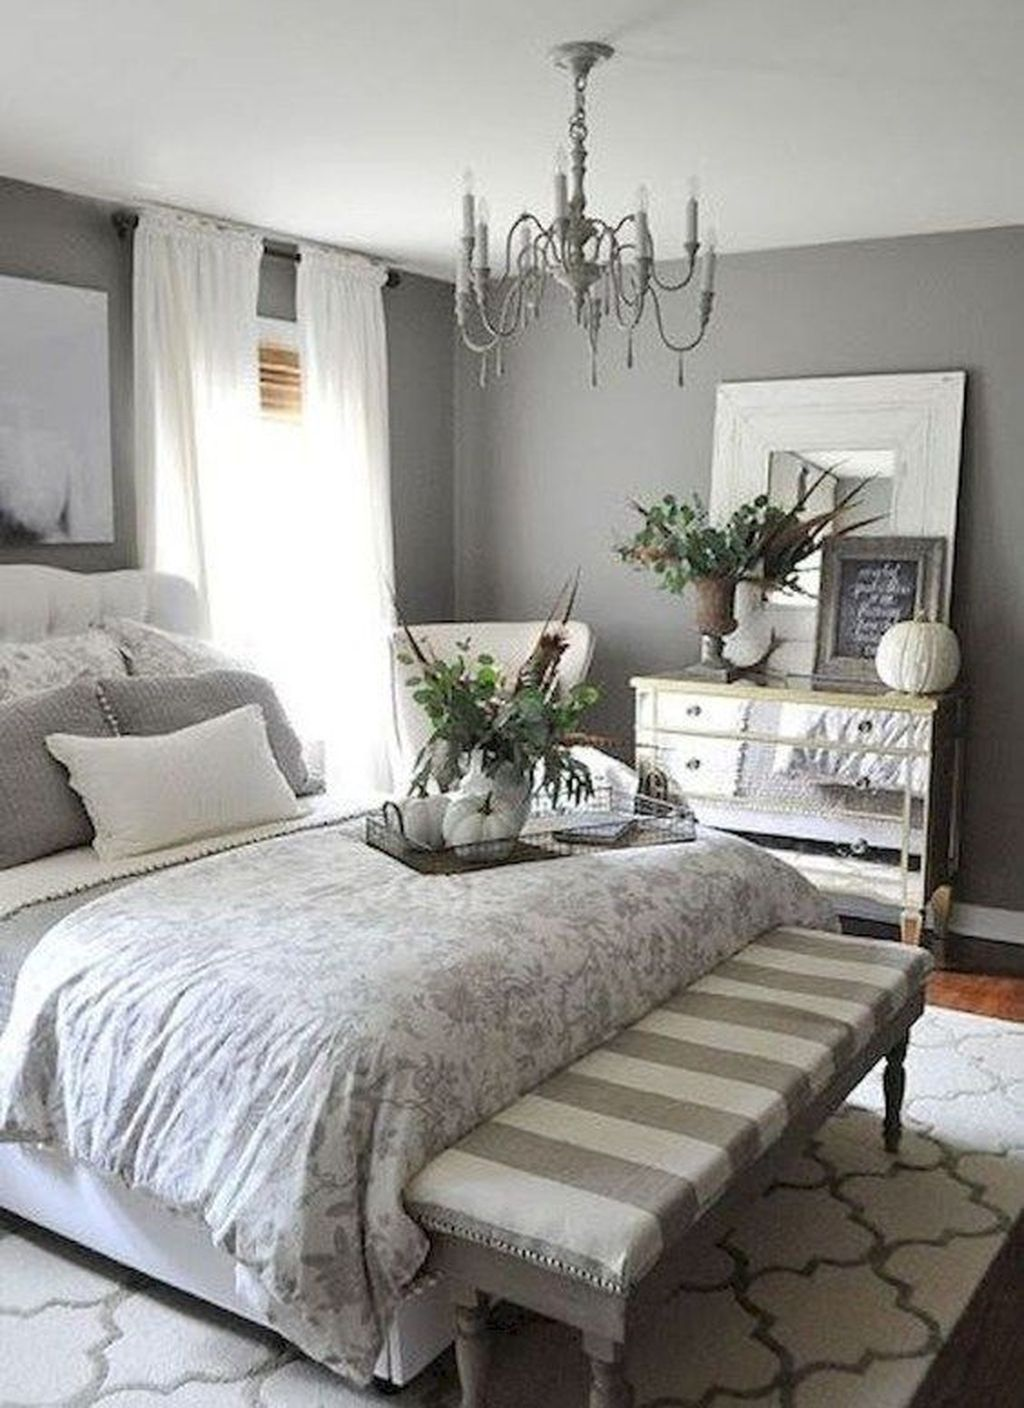 Apartment Decorating On A Budget For Women Shabby Chic